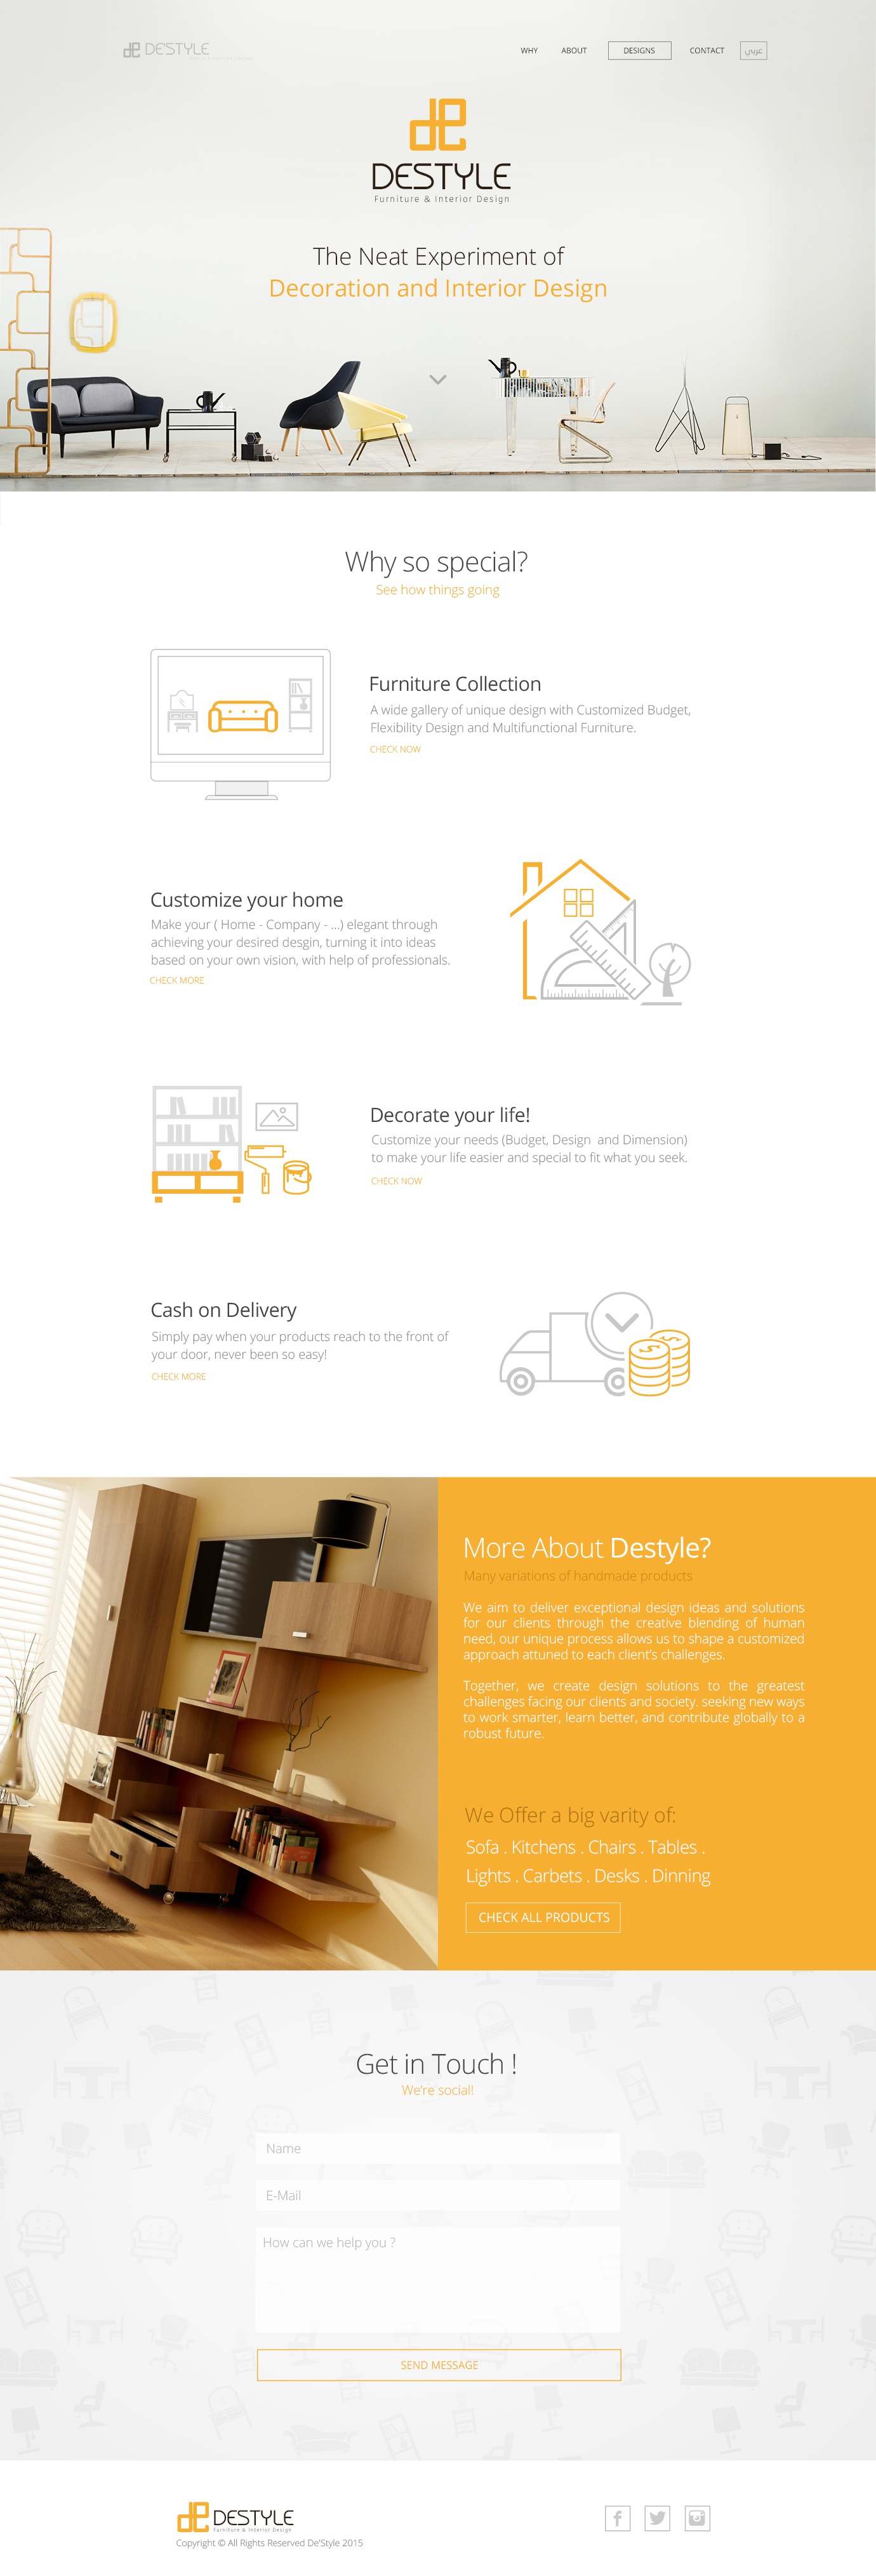 Destyle landing page full